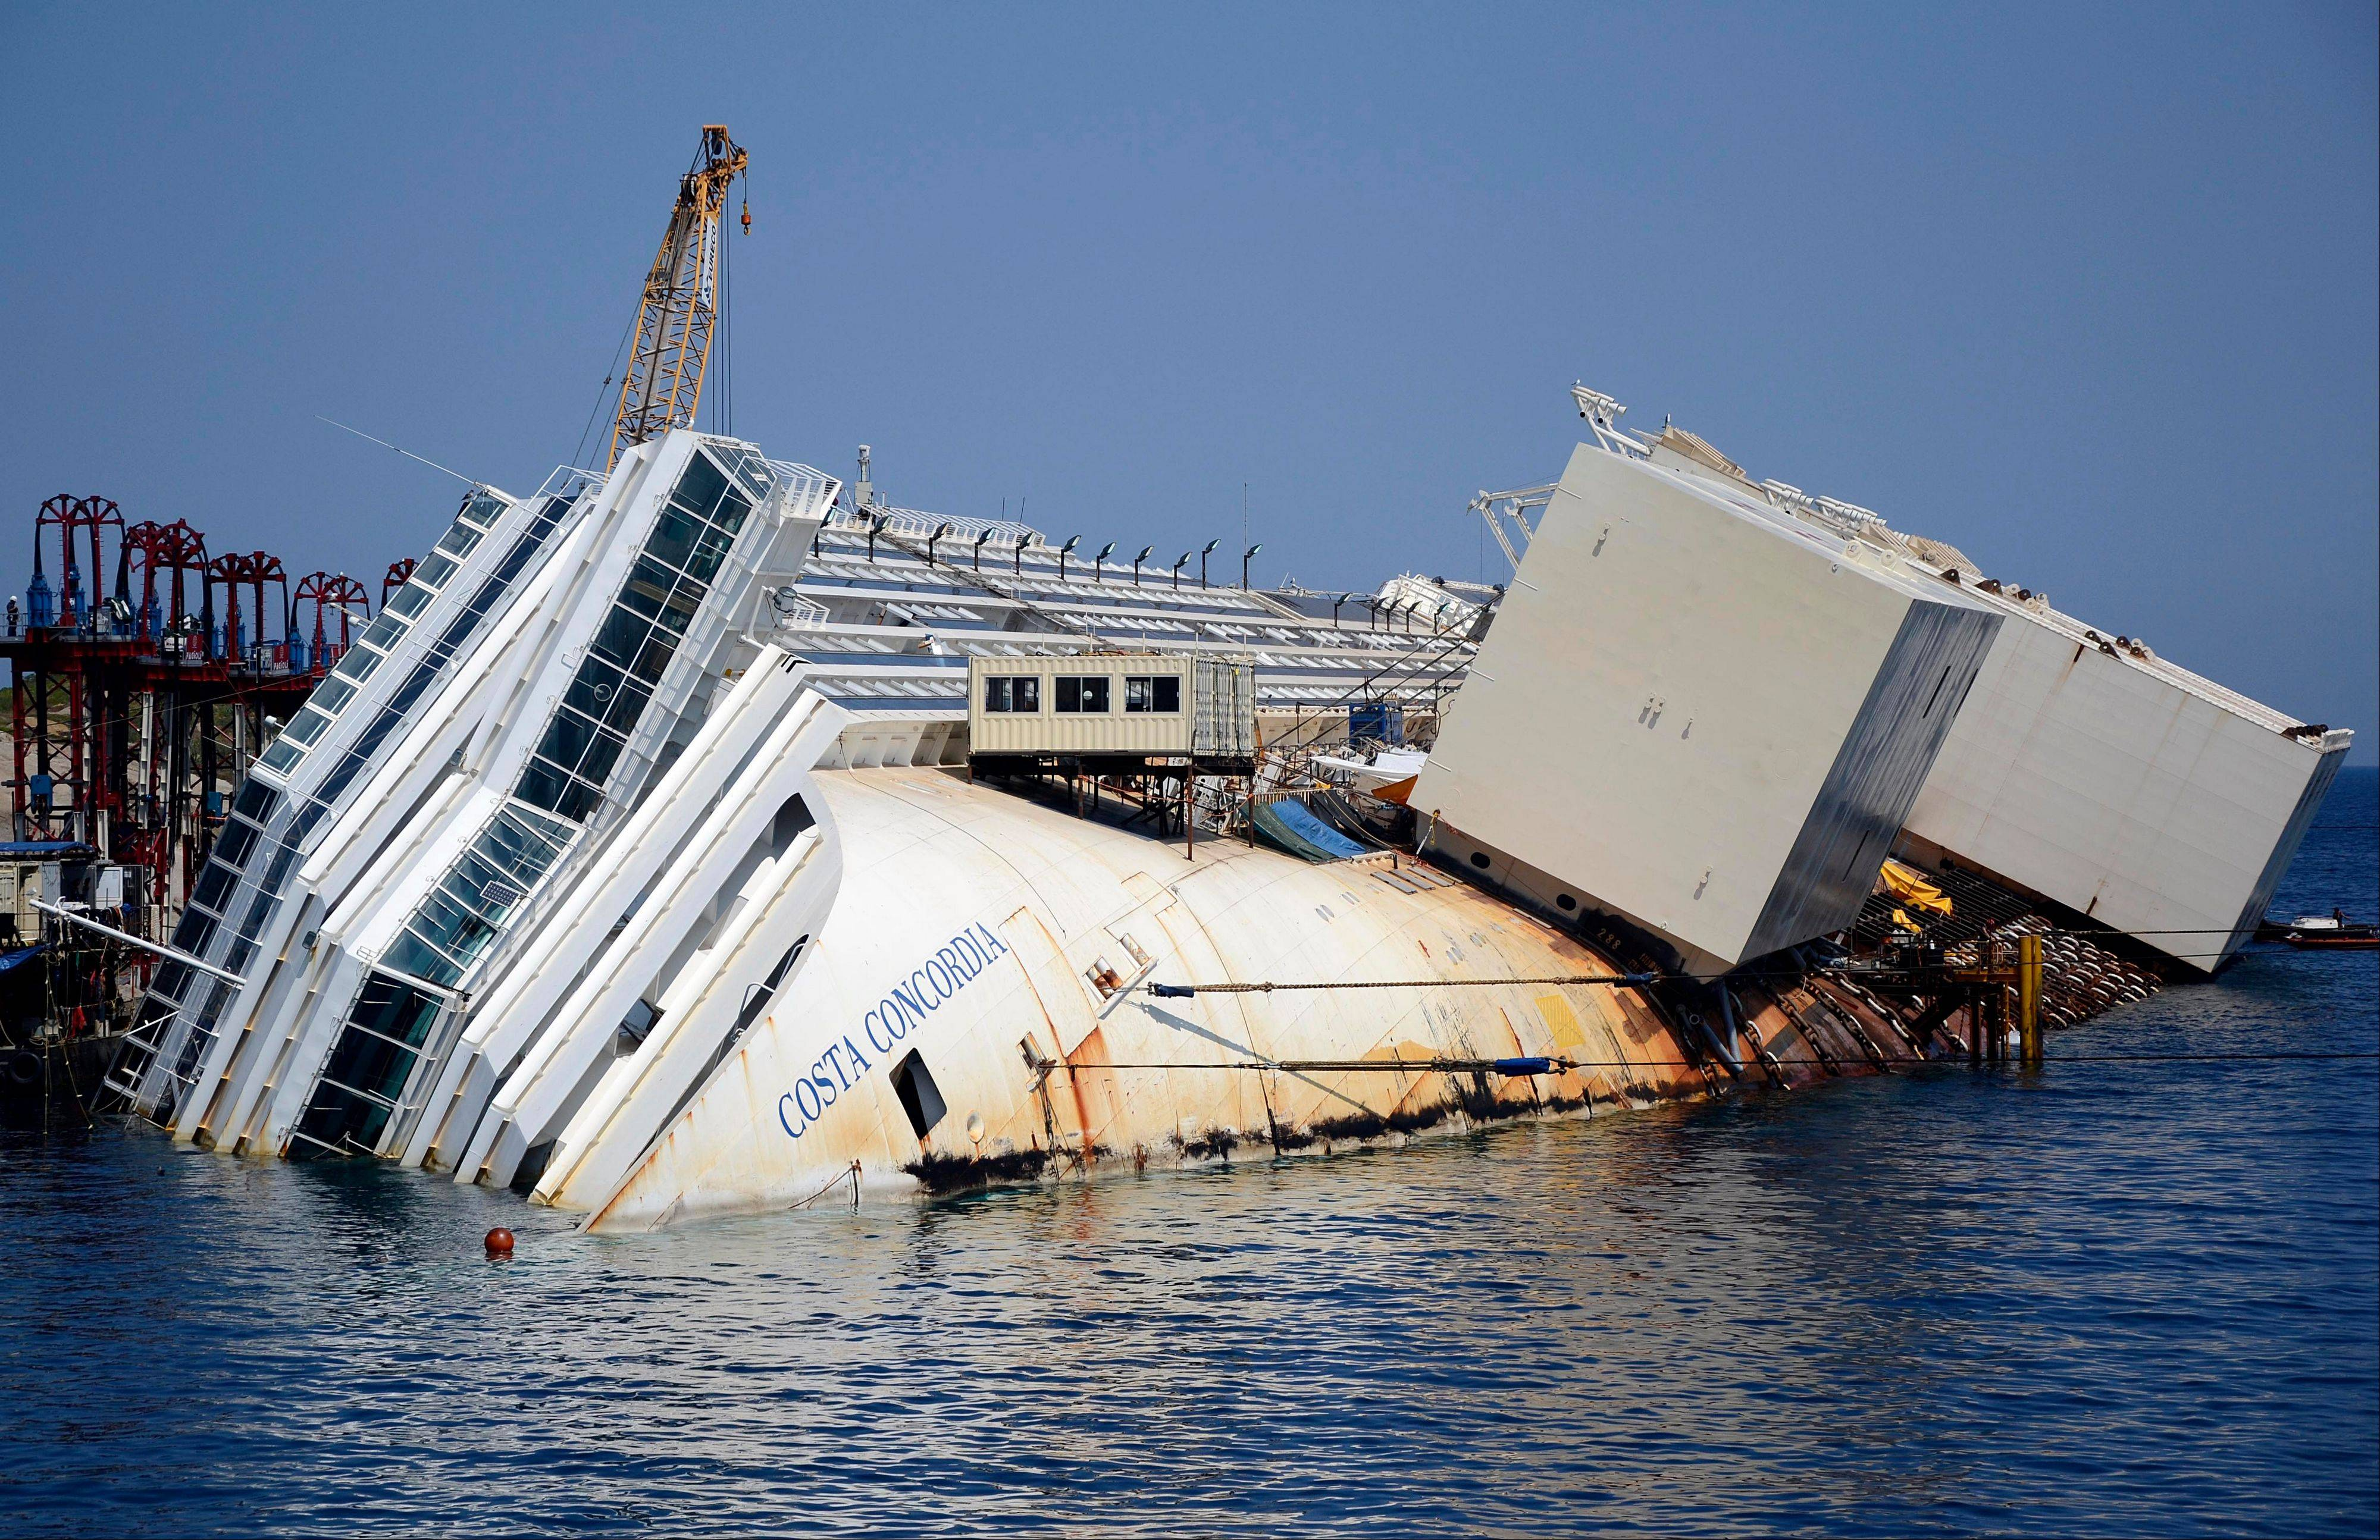 The Costa Concordia cruise ship lies on its side in the Tuscan Island of Isola del Giglio, Monday, July 15. Salvage crews are working against time to right and remove the shipwrecked Costa Concordia cruise ship, which is steadily compressing down on itself from sheer weight onto its granite seabed perch off the Tuscan island of Giglio.